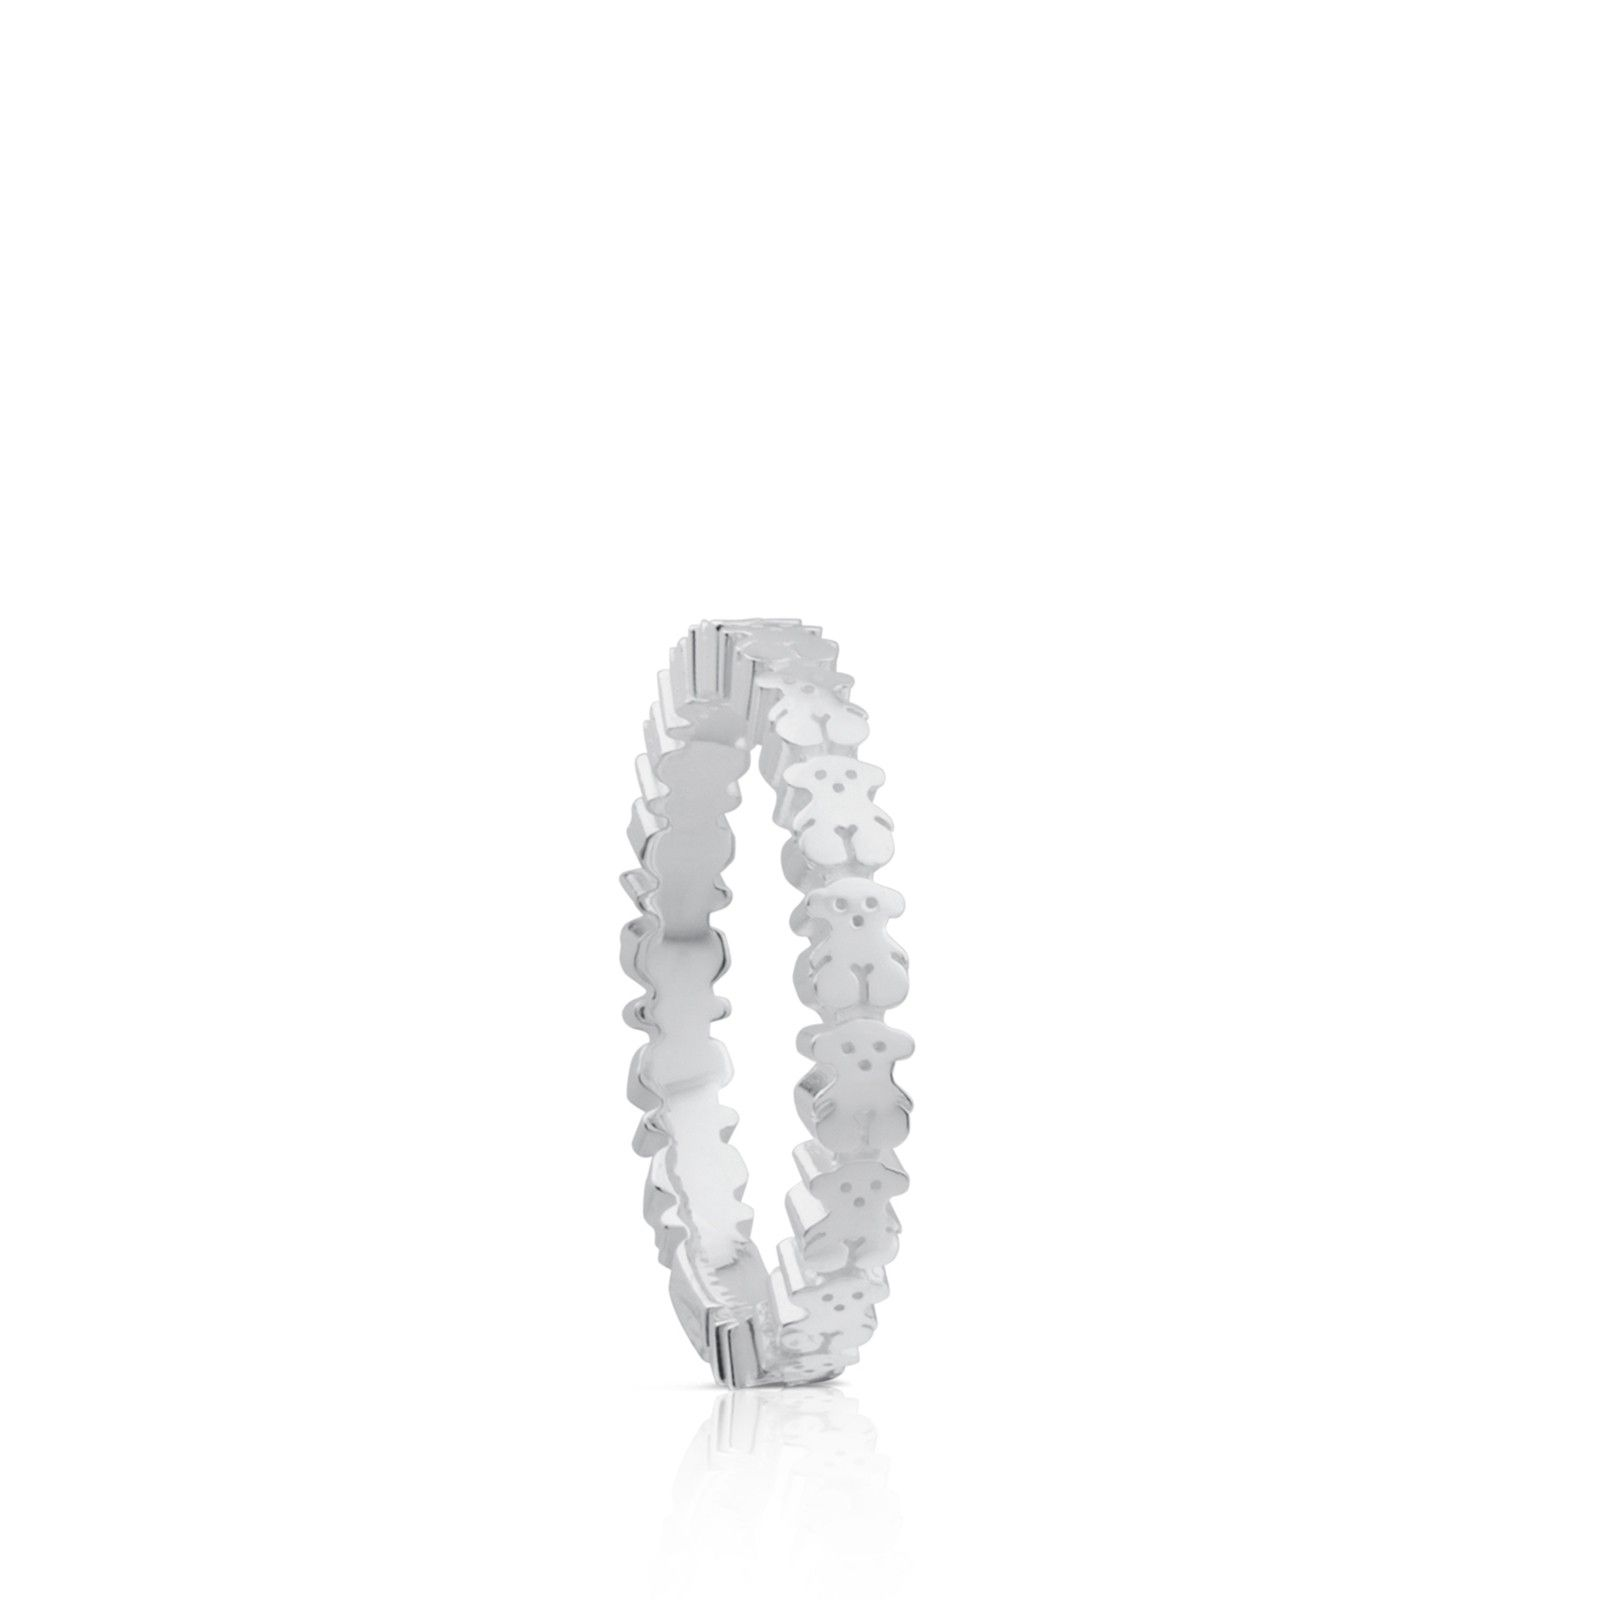 29c2023142ae Straight - Tous | Tous | Rings, Jewelry, Jewelry rings